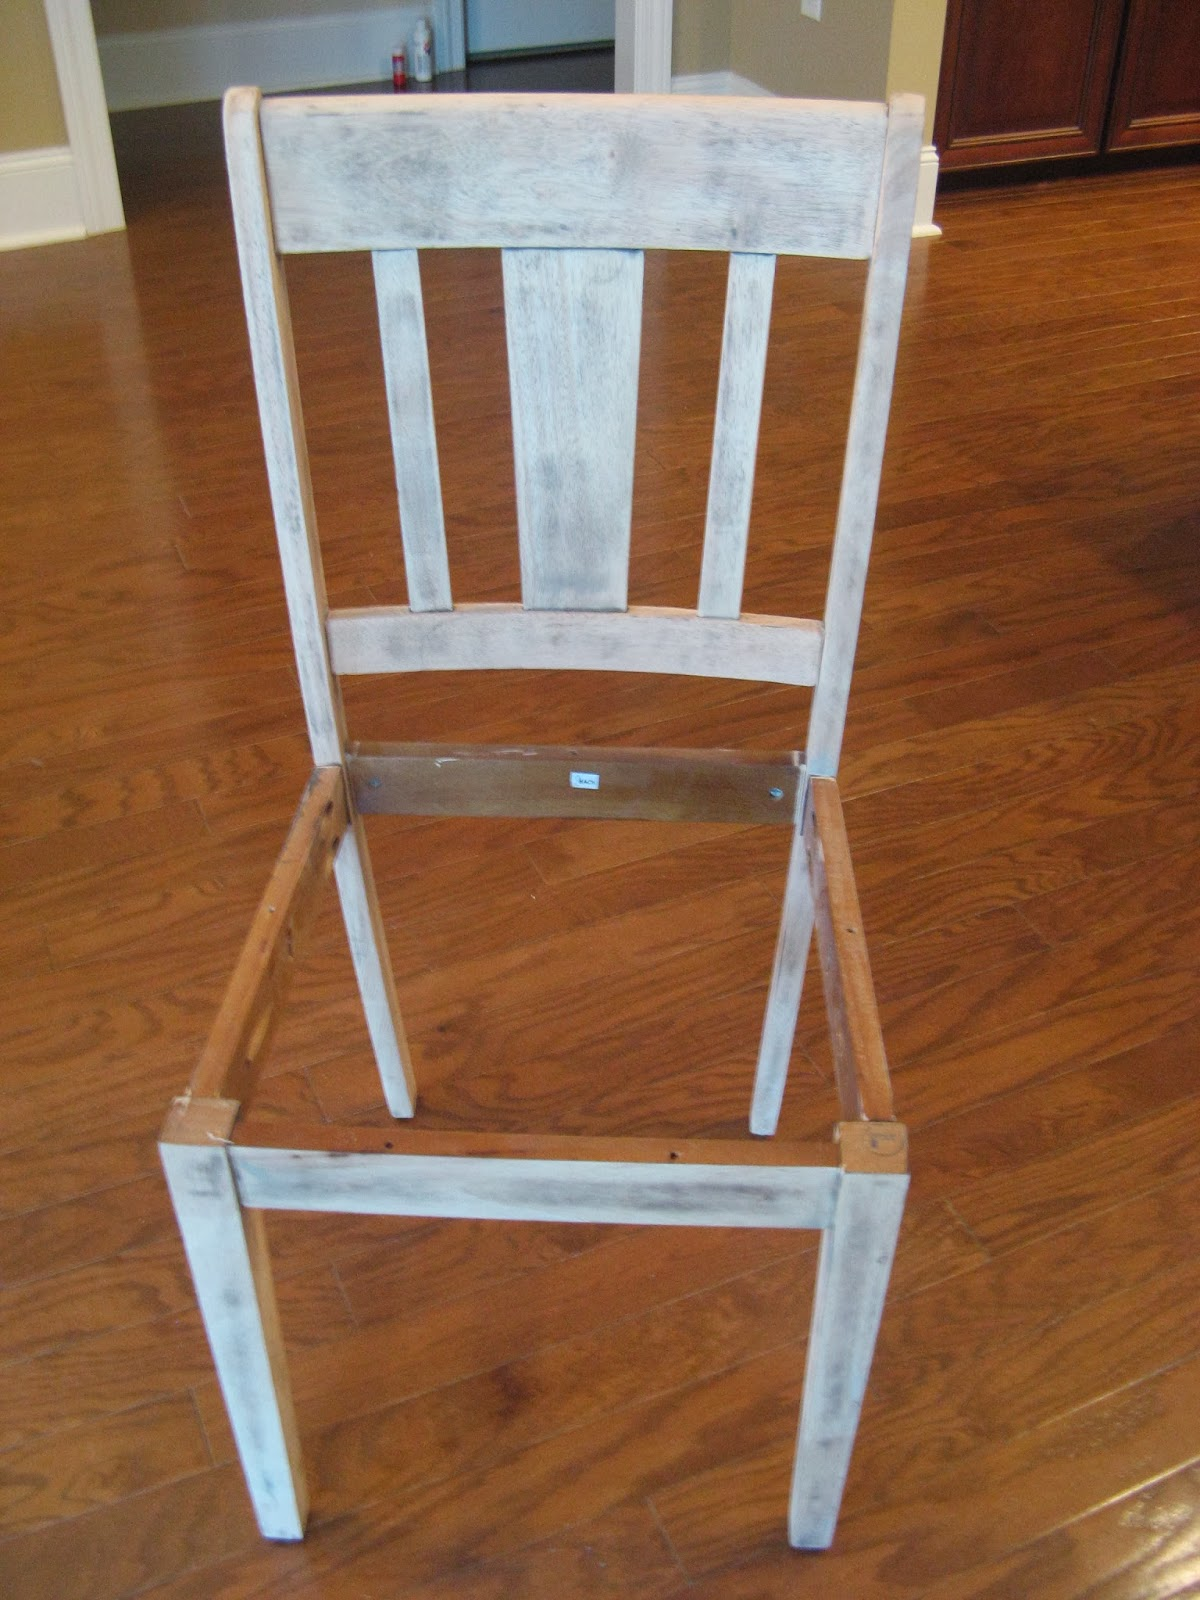 Chair - Driftwood Paint Technique - sanding